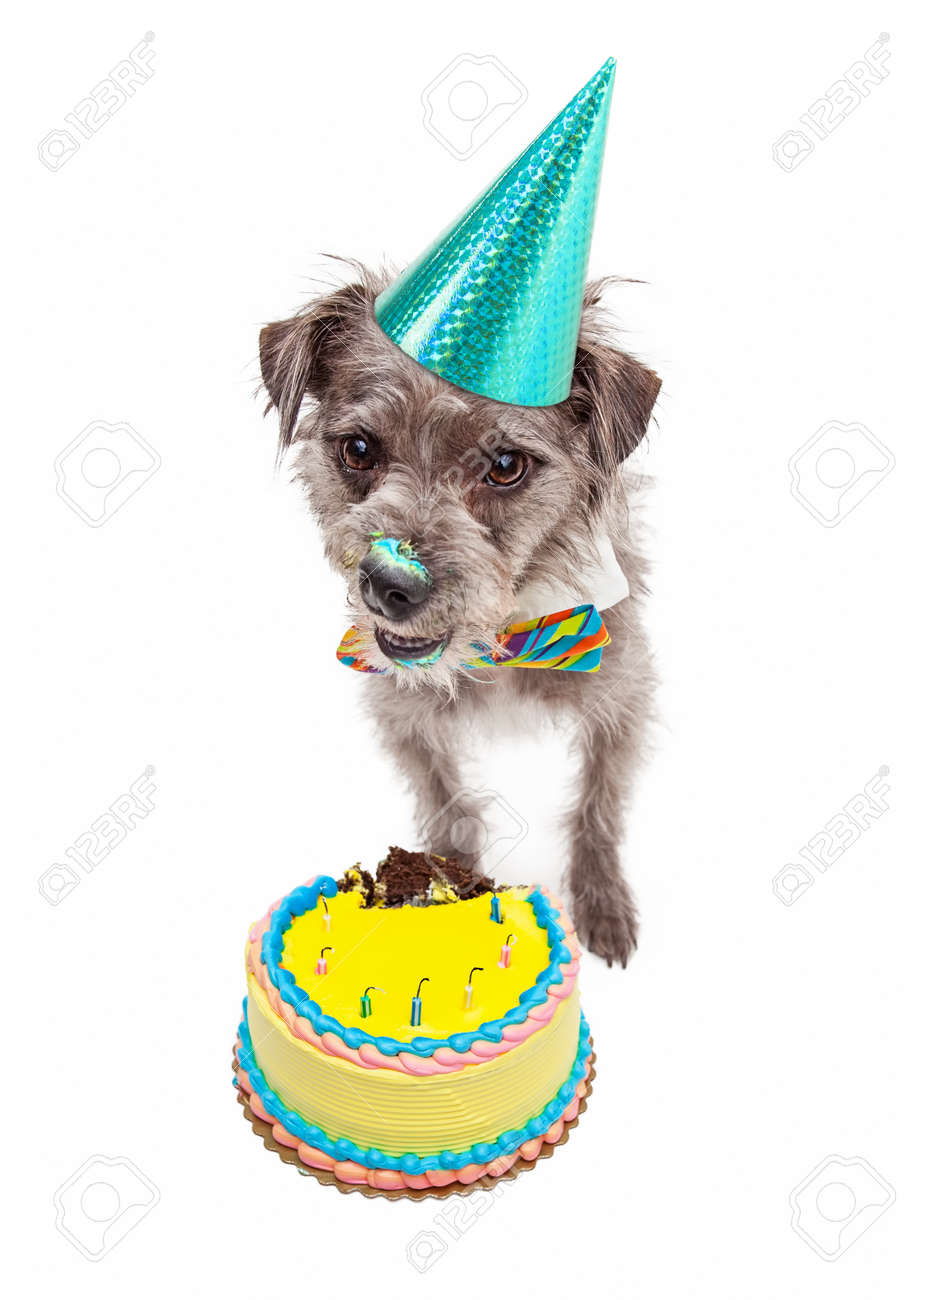 Cute Little Terrier Dog Wearing A Birthday Hat And Eating A Cake